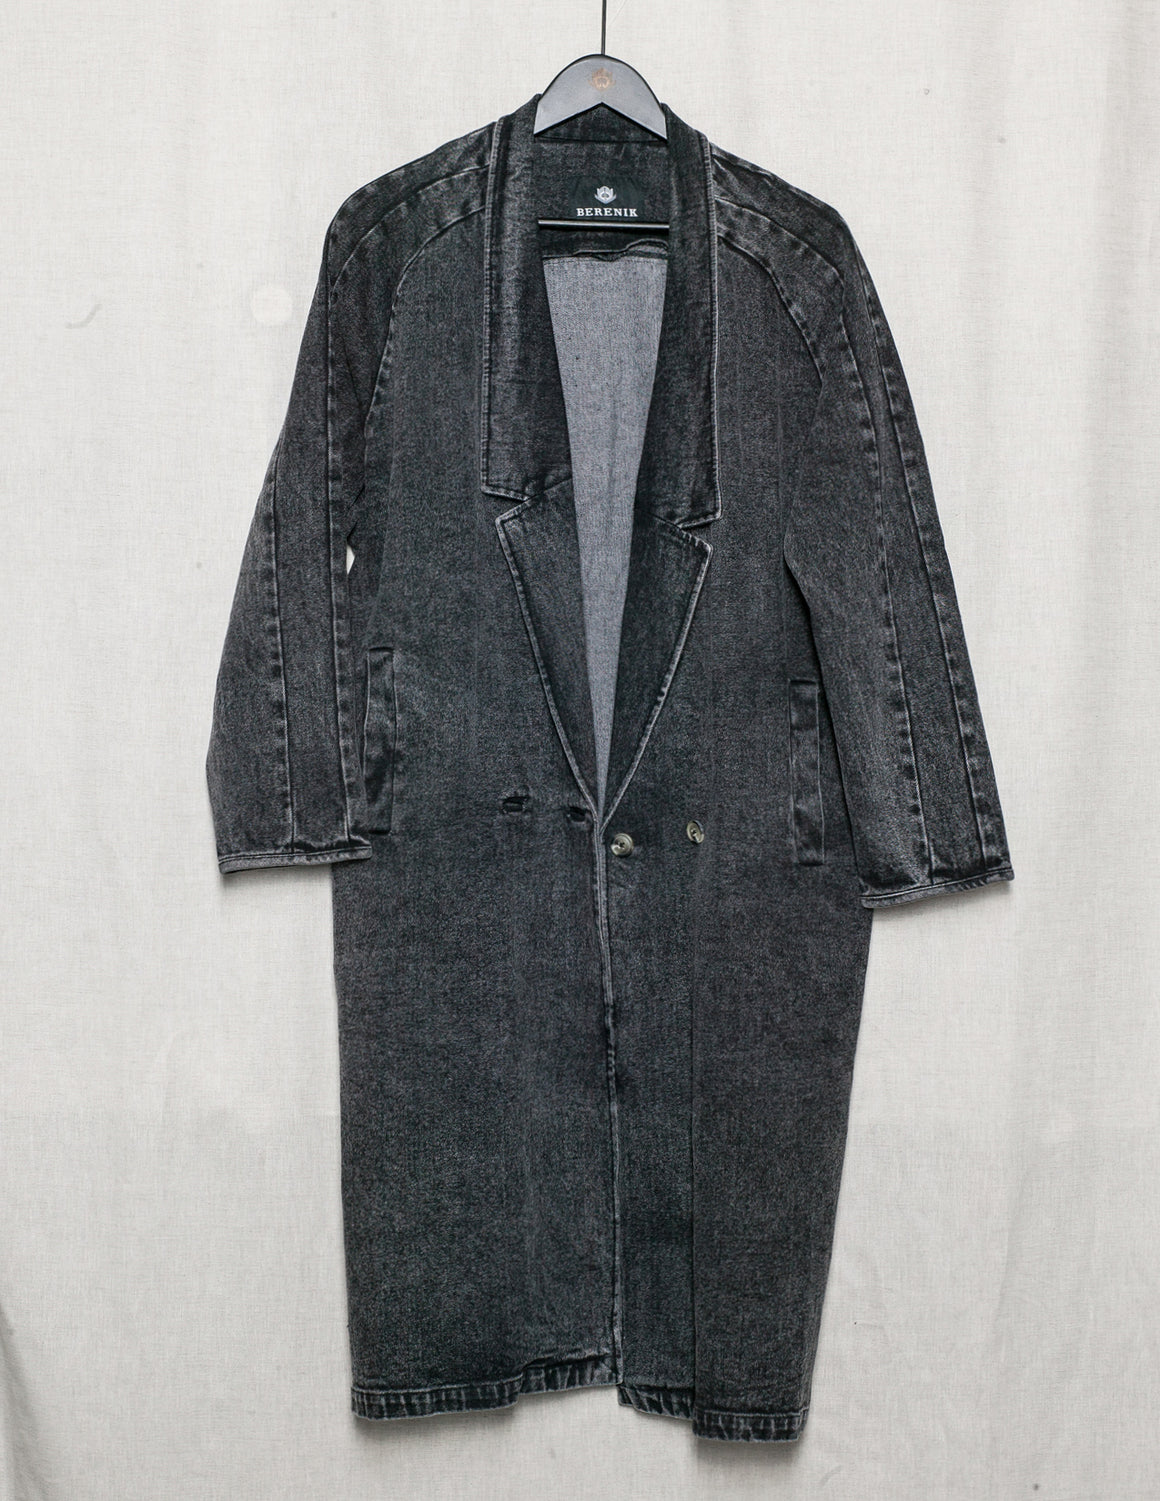 SAMPLE - COAT DEEP REVERS - DENIM washed black